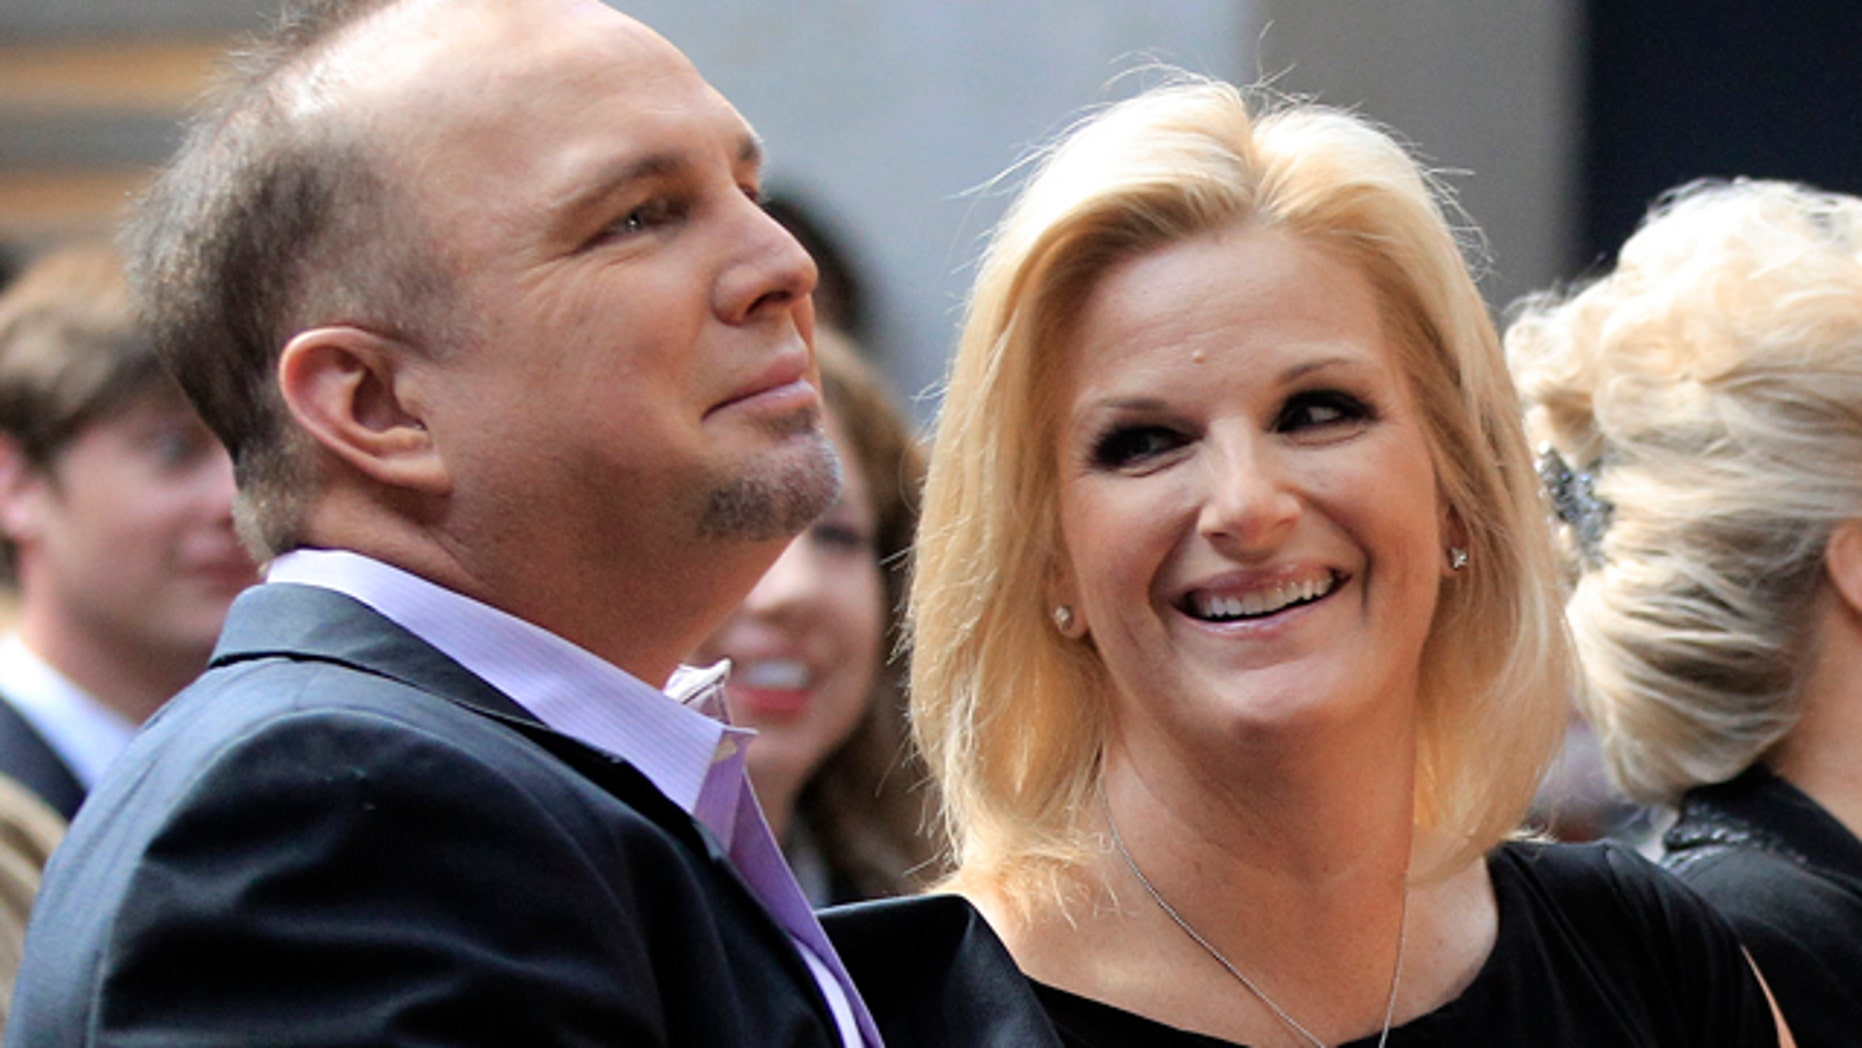 March 6: Garth Brooks and his wife Trisha Yearwood listen during the announcement that Brooks will be inducted into the Country Music Hall of Fame.